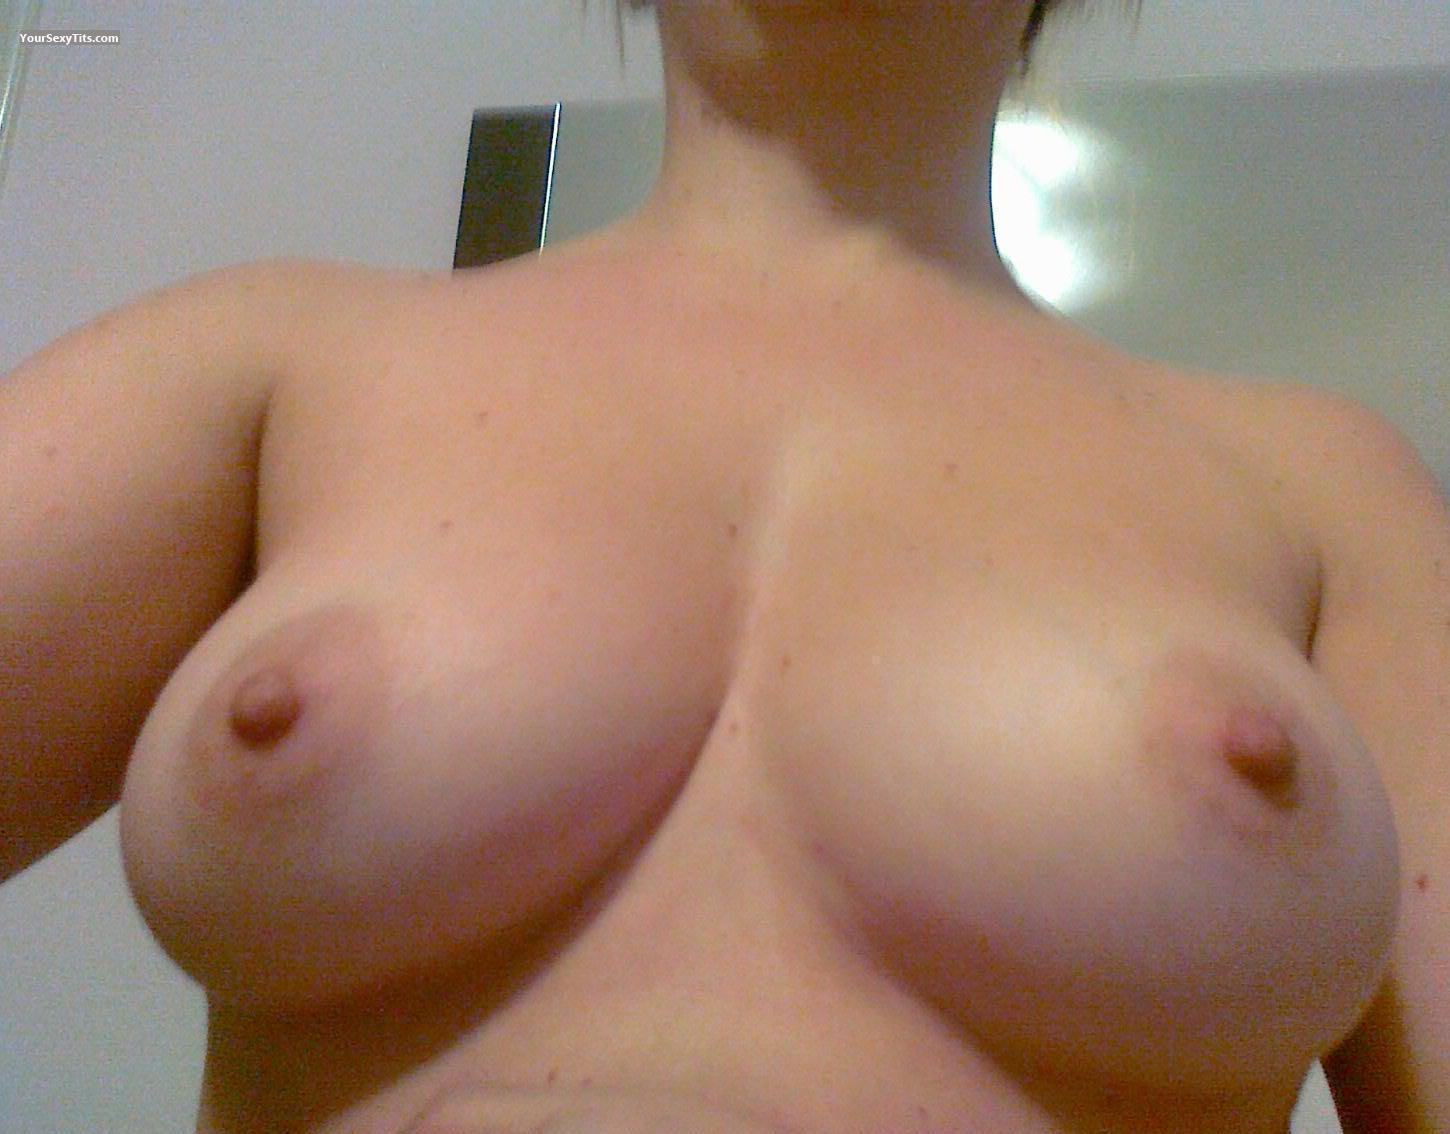 My Medium Tits Selfie by Joanna